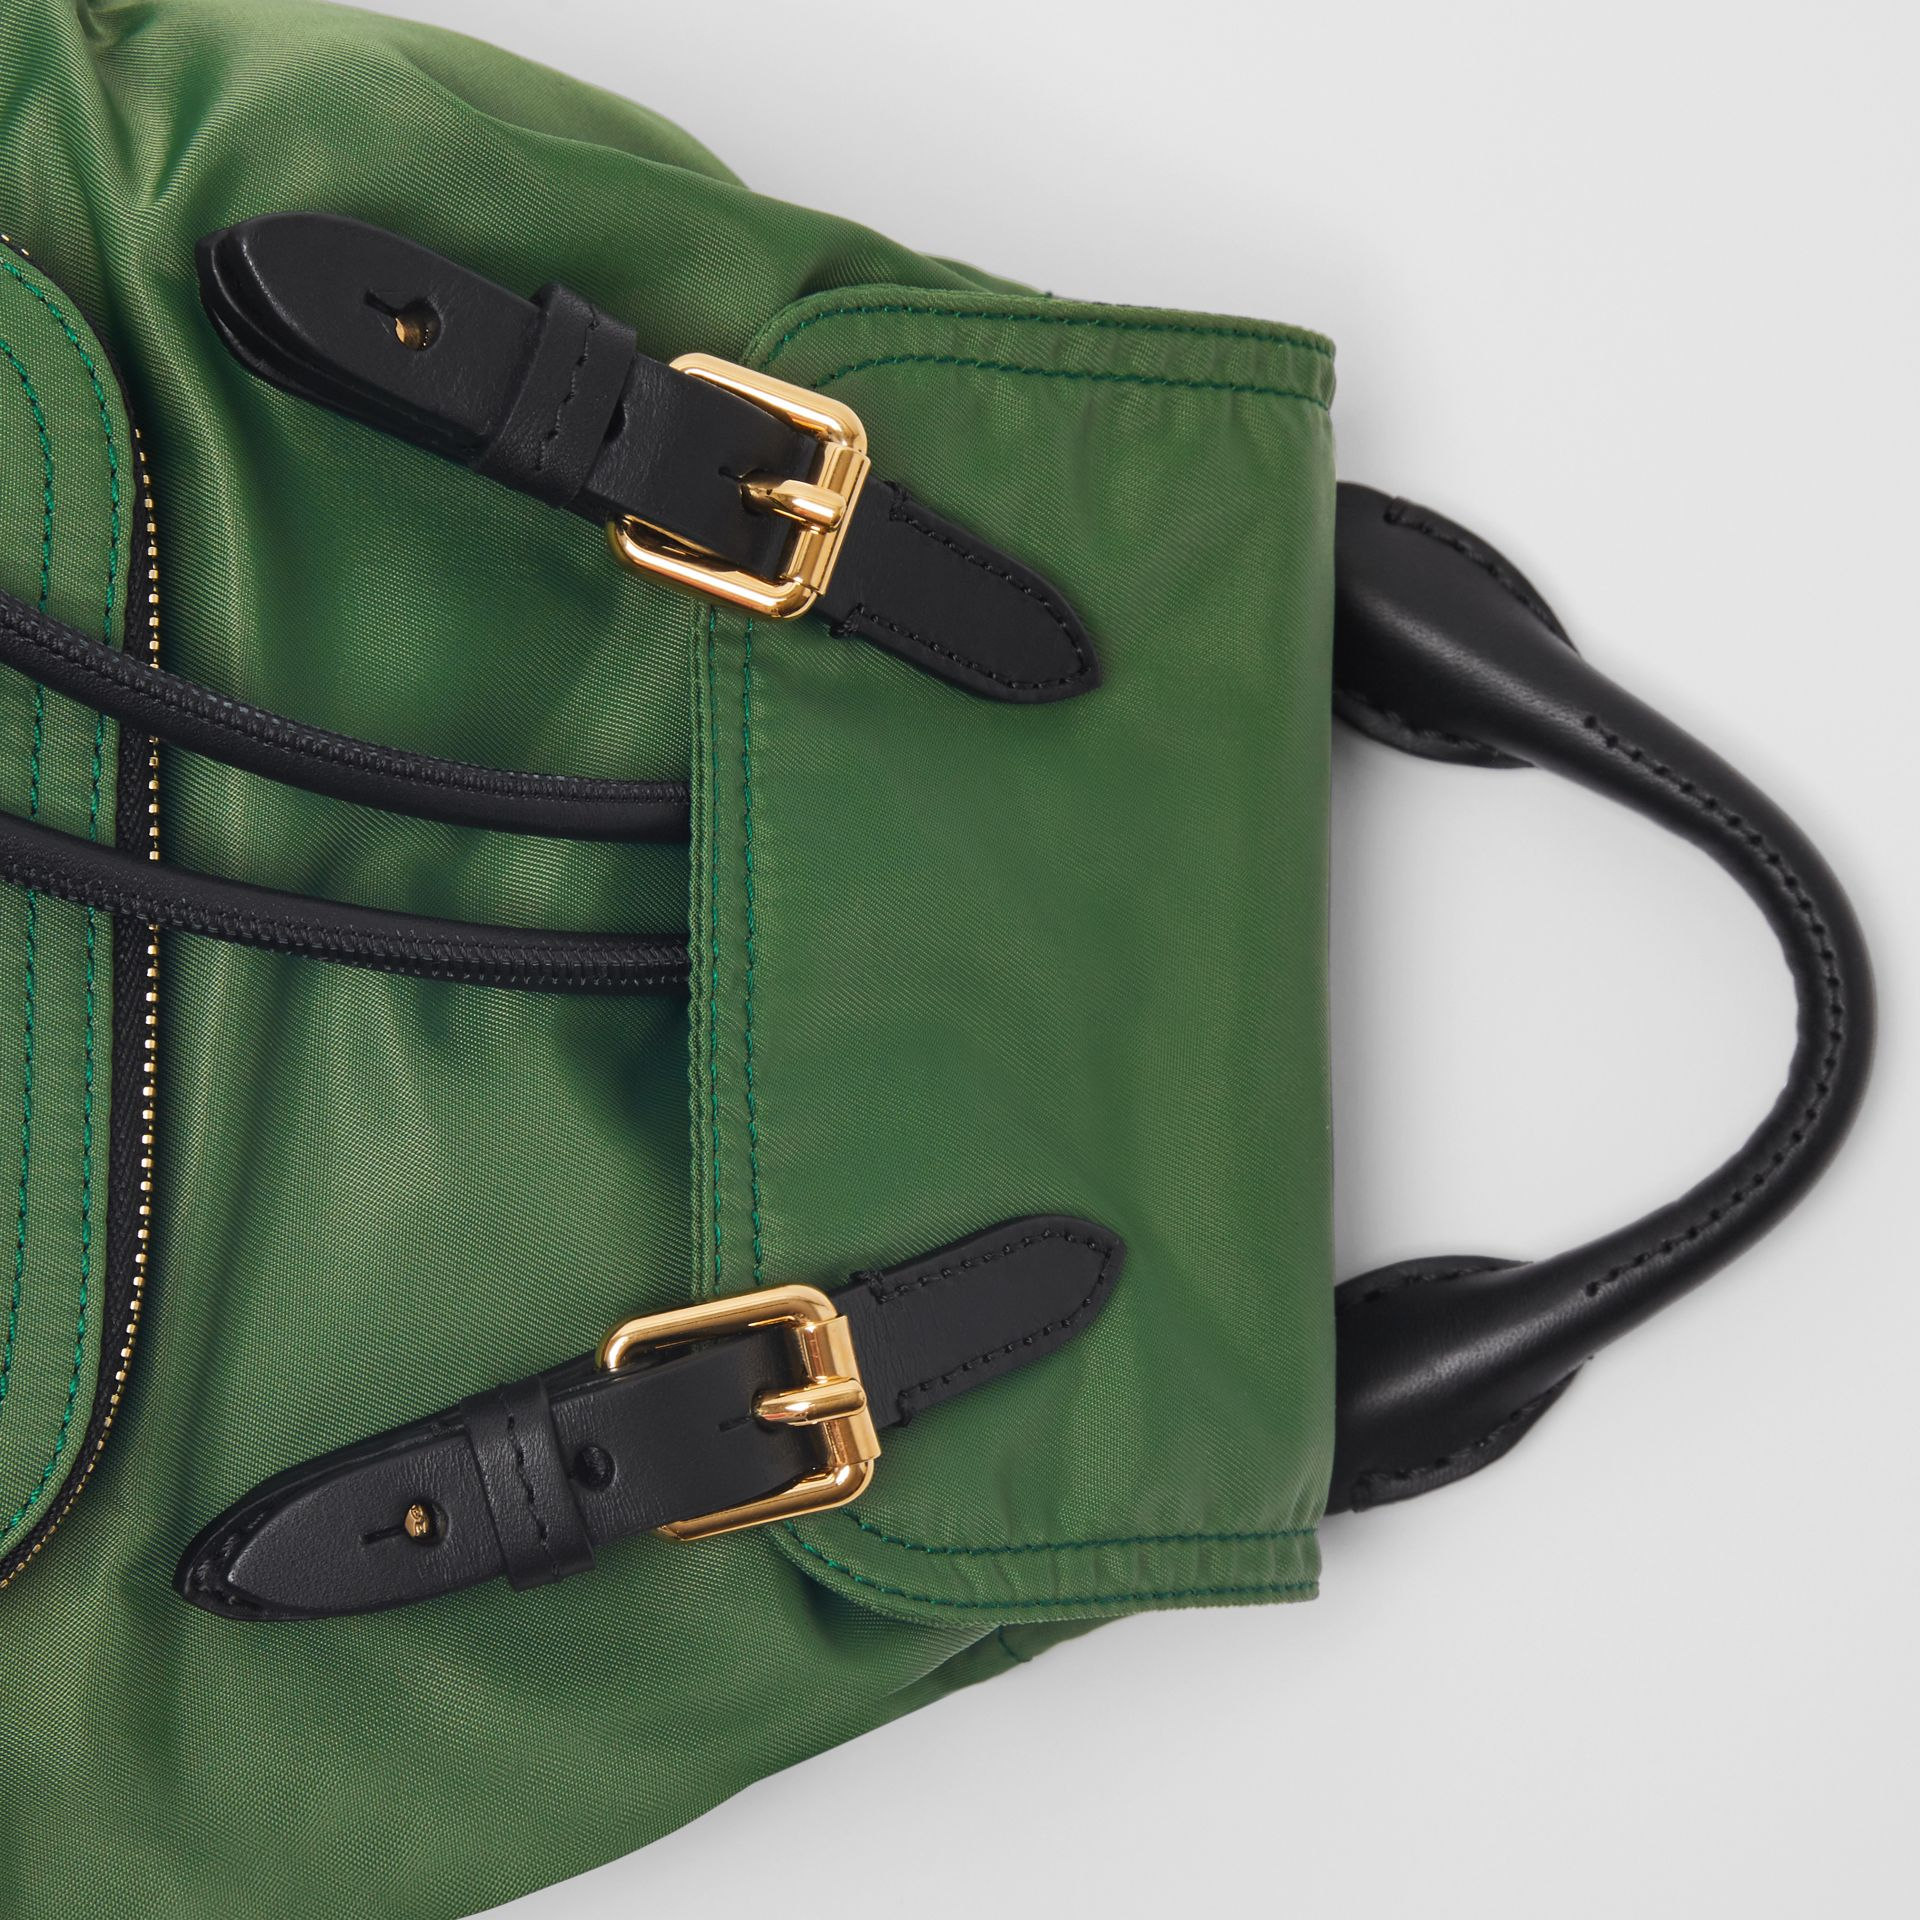 The Small Crossbody Rucksack in Nylon in Racing Green - Women | Burberry United Kingdom - gallery image 1